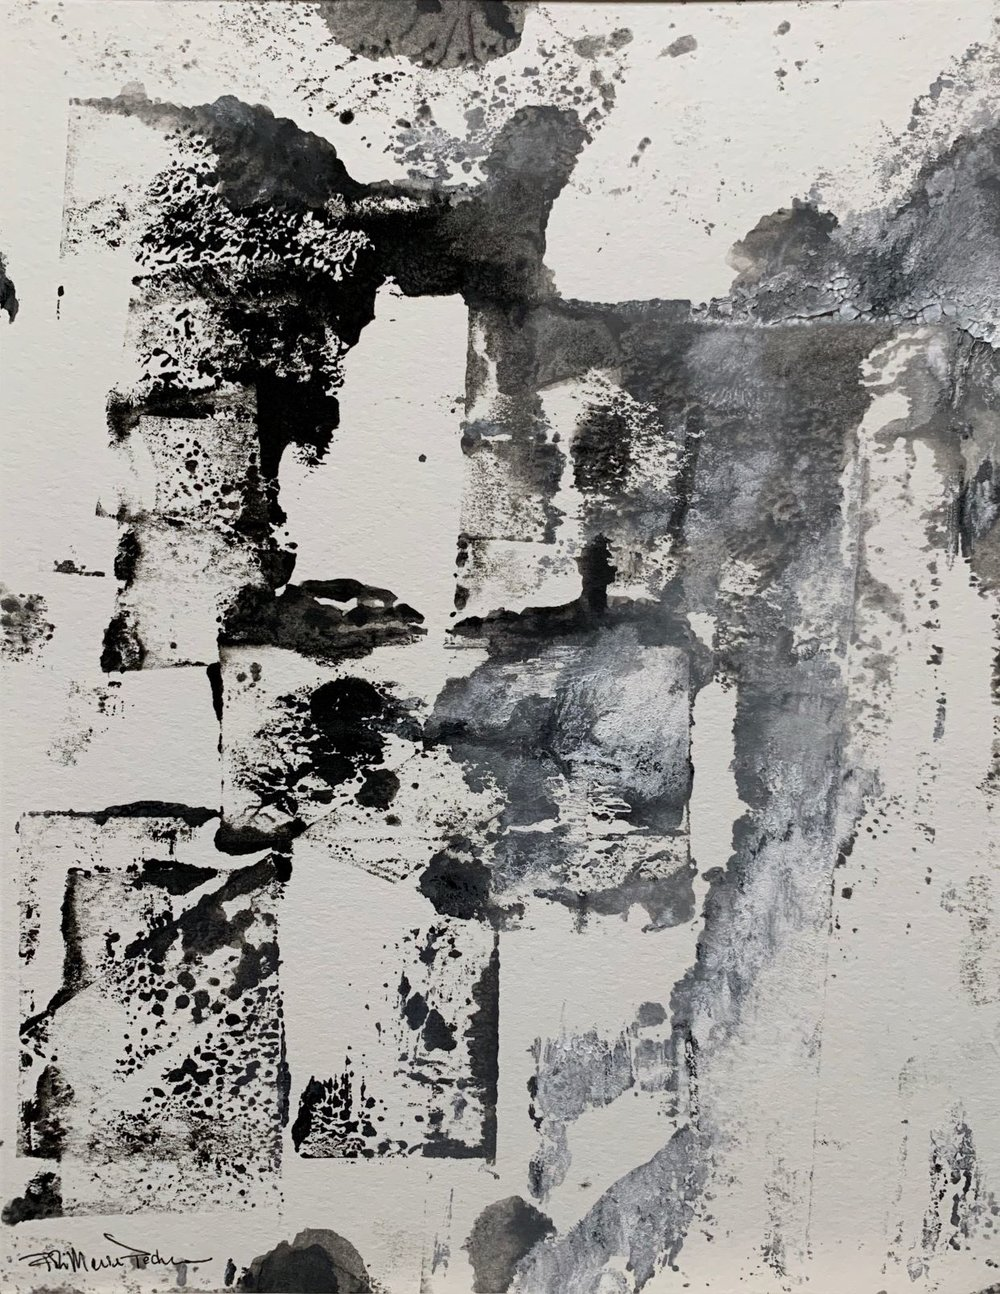 The temple monotype robin maria pedrero.JPG